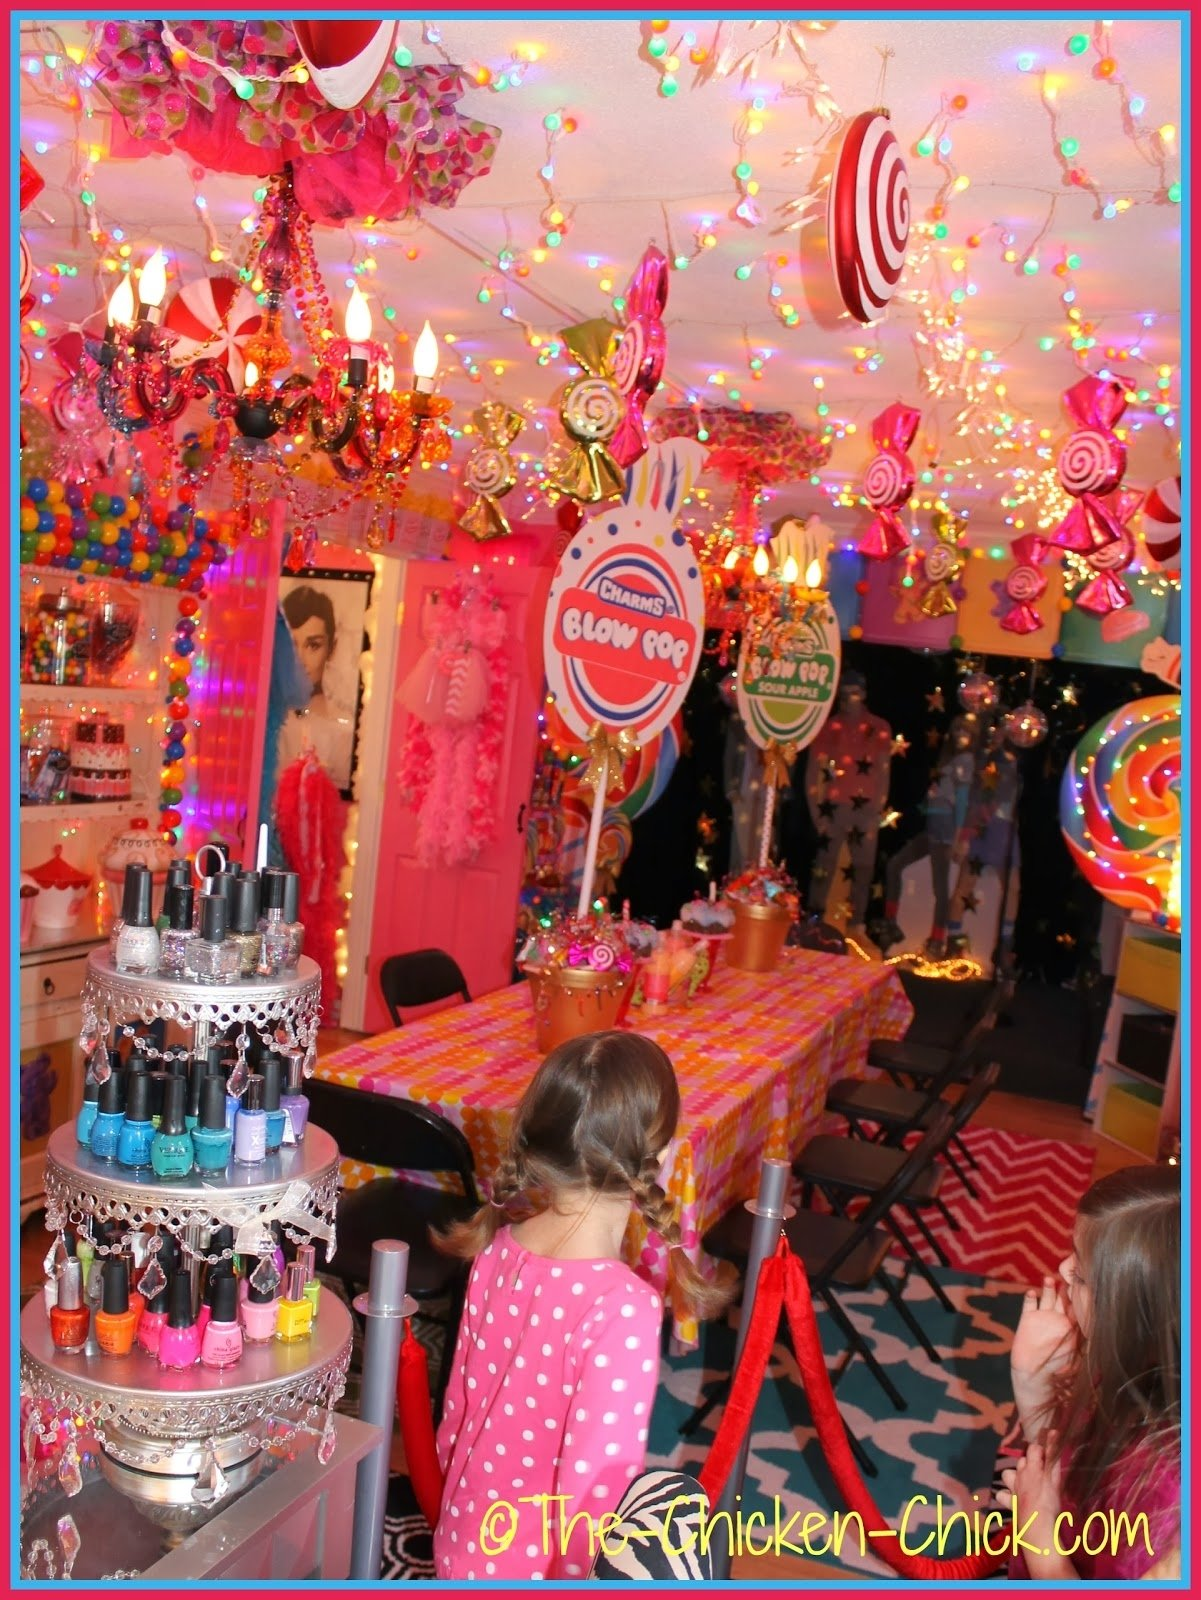 10 Attractive 15 Year Old Birthday Party Ideas spa birthday party ideas for 7 year olds pool design ideas 21 2021